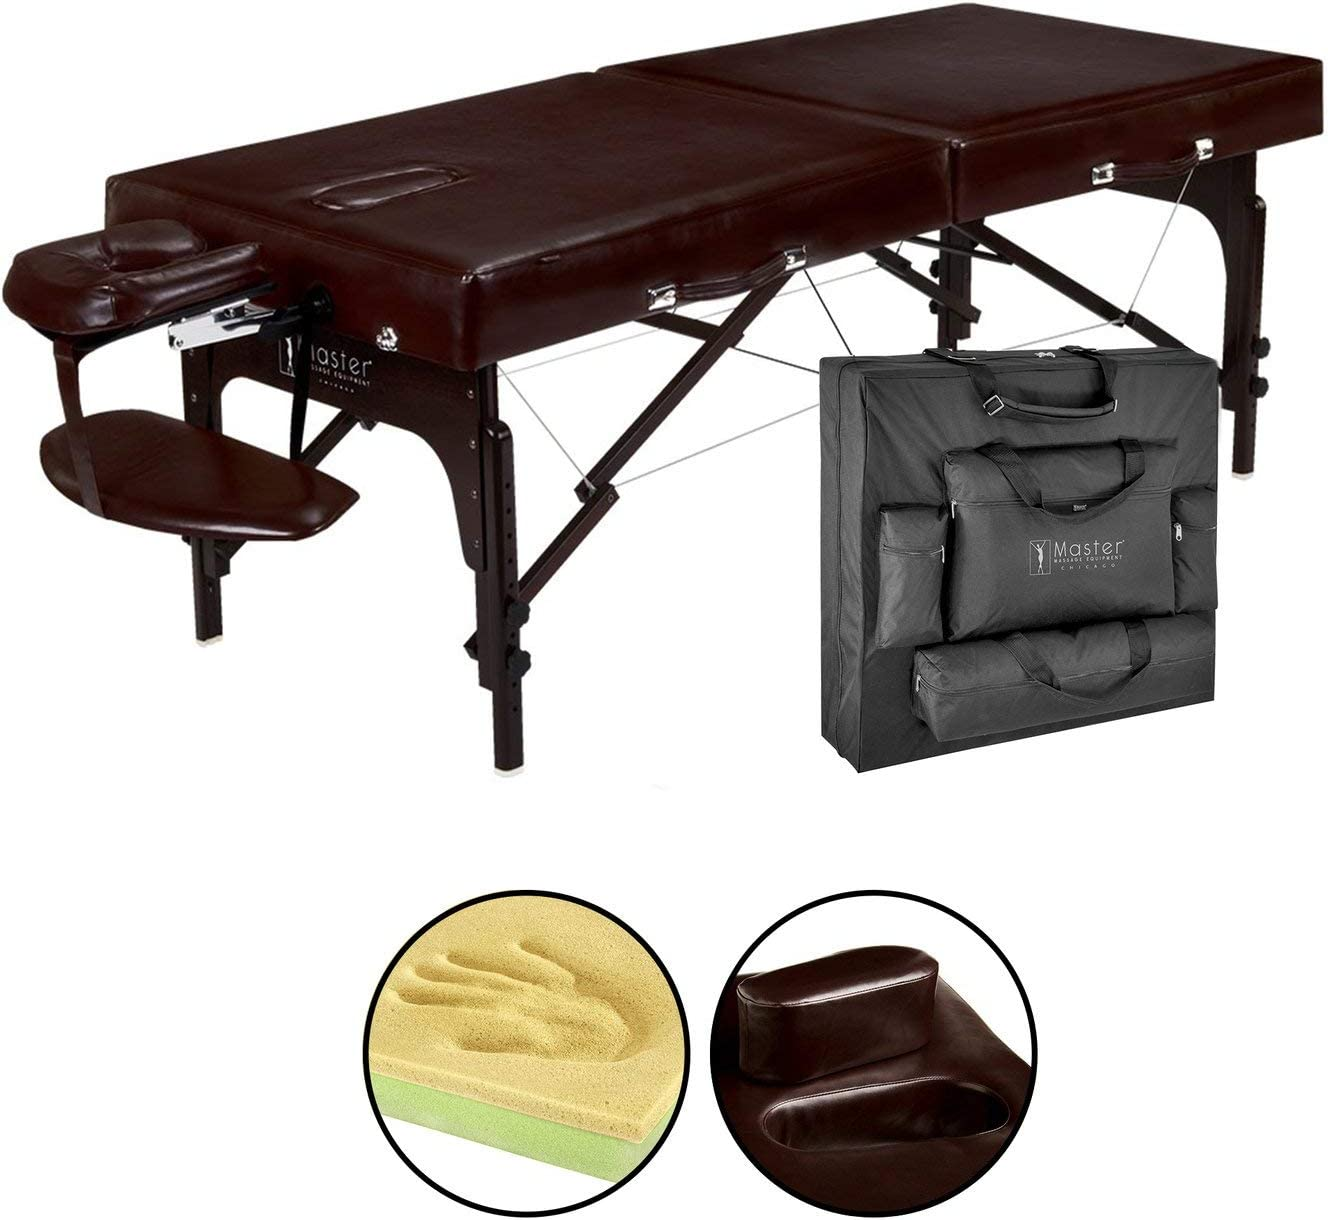 Master Massage 31 Supreme Lx Portable Massage Table Package-brown Luster, Memory Foam